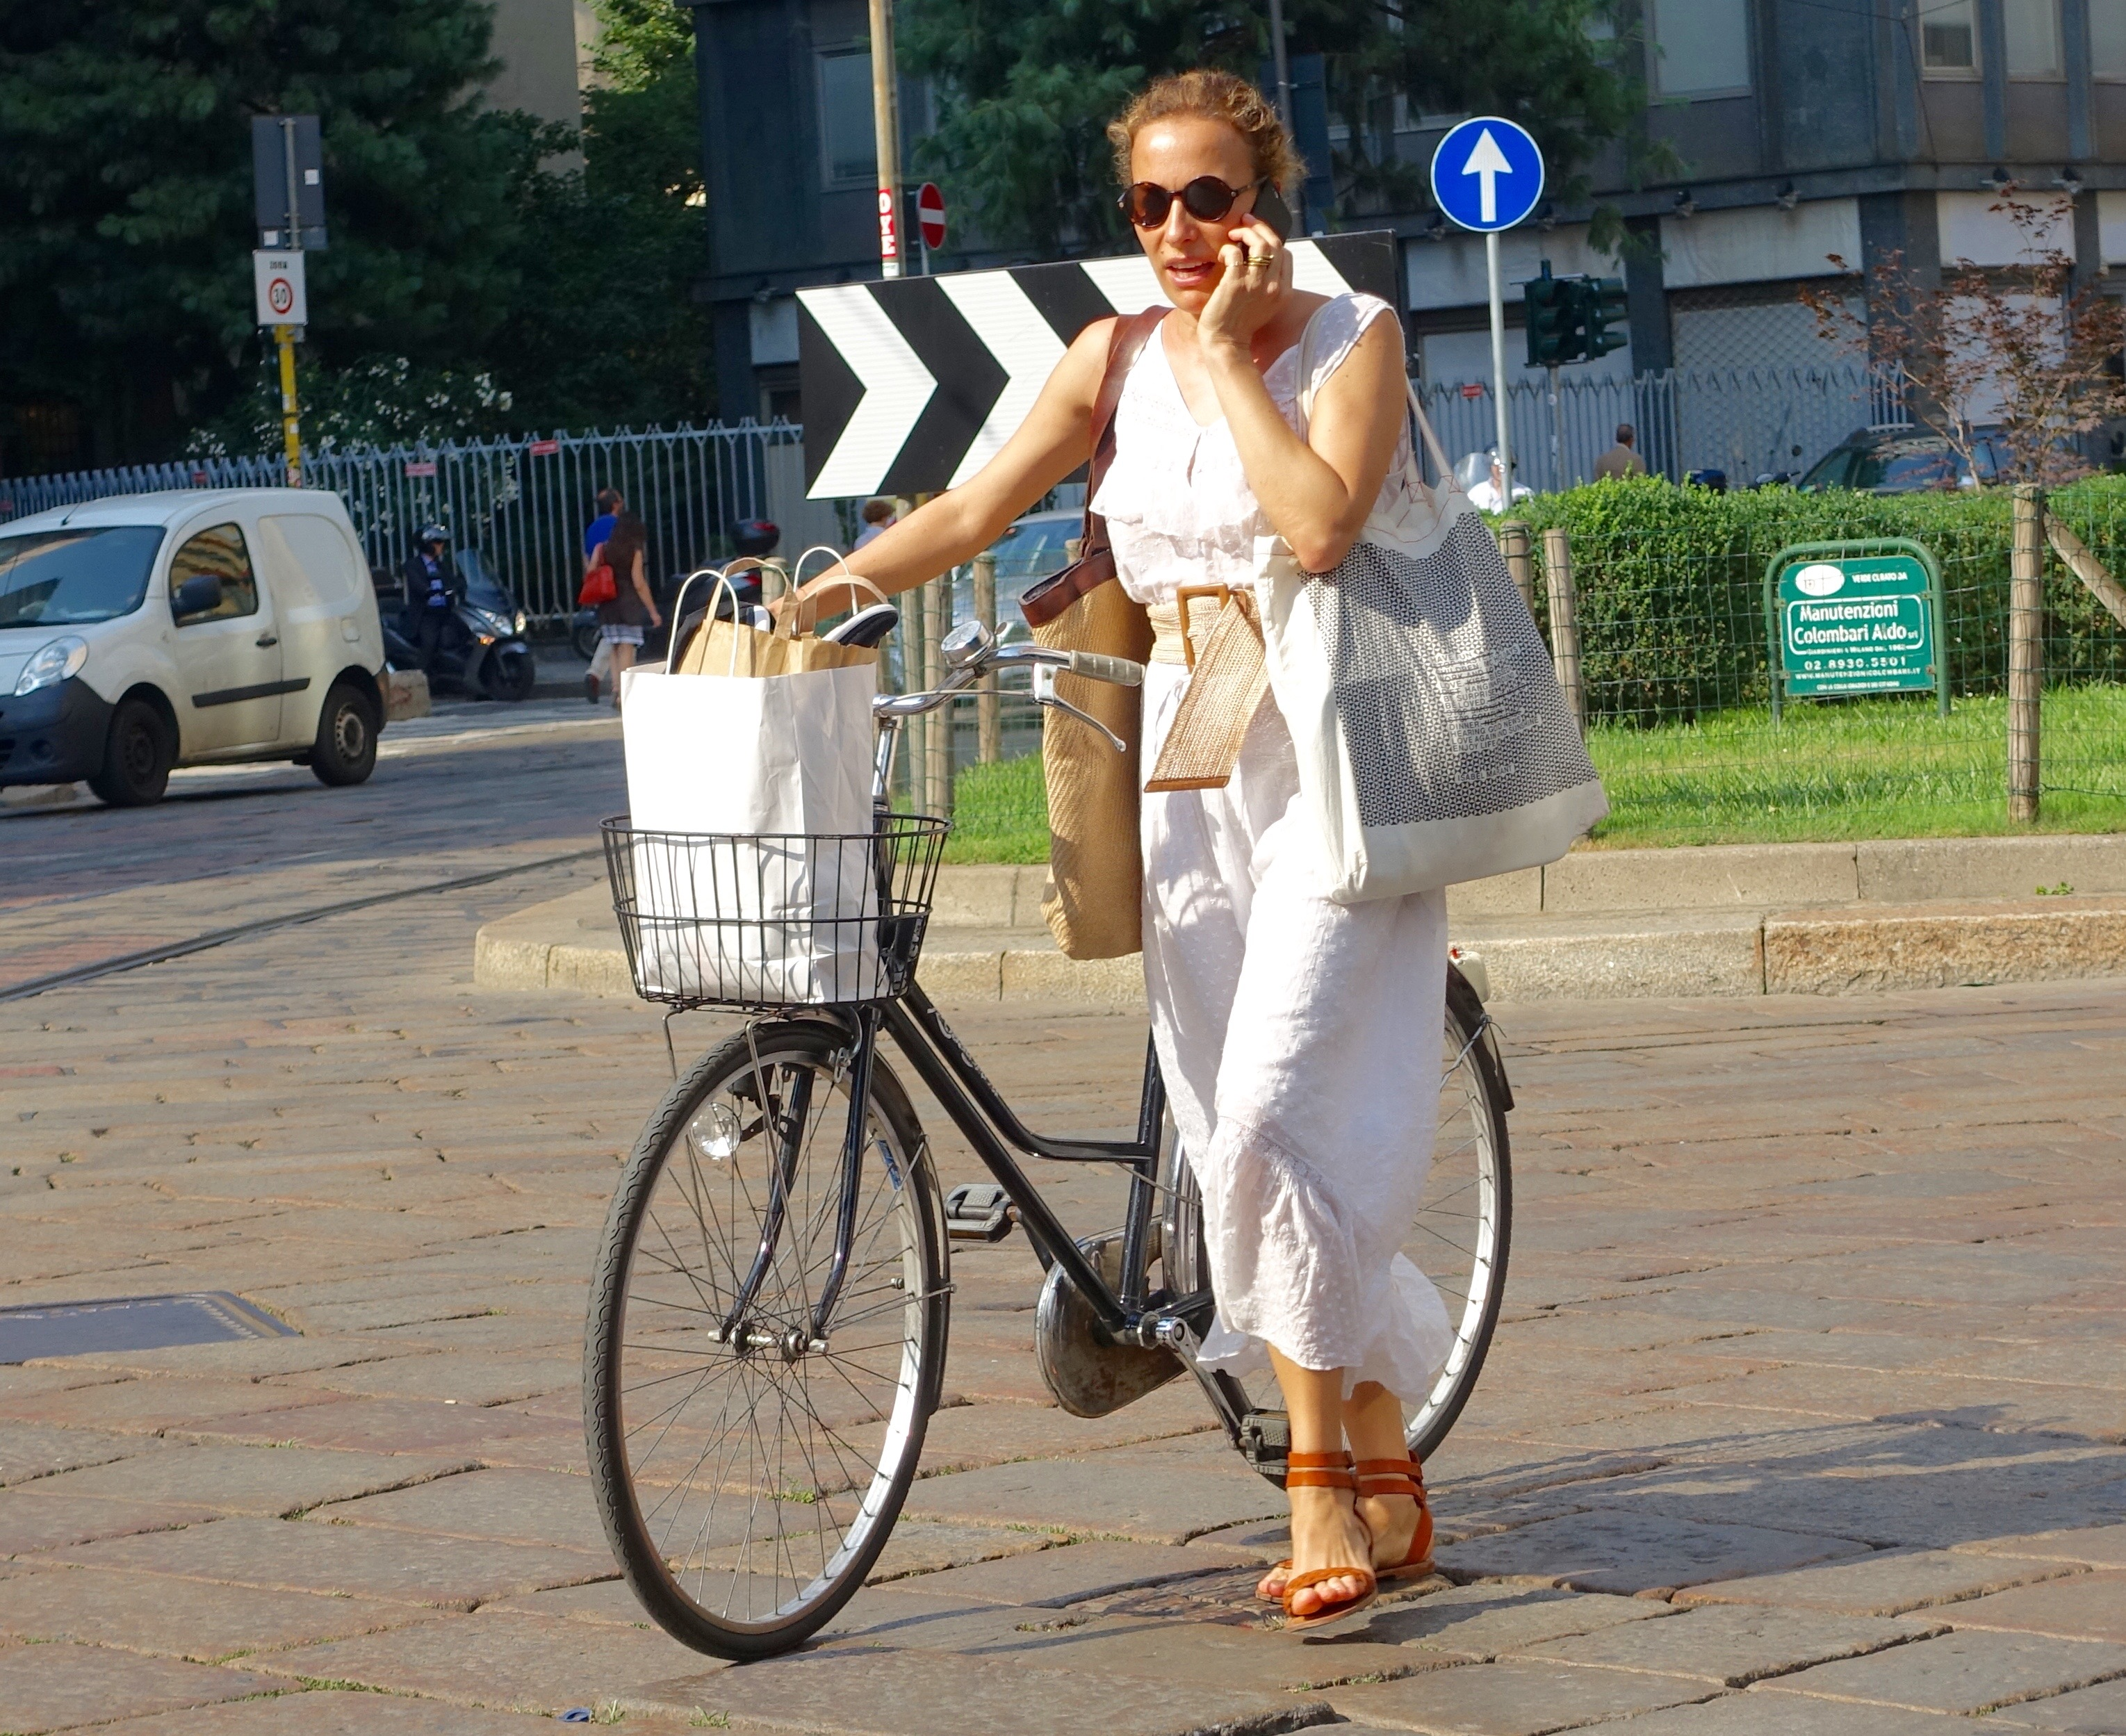 Stylish bikers of Milan